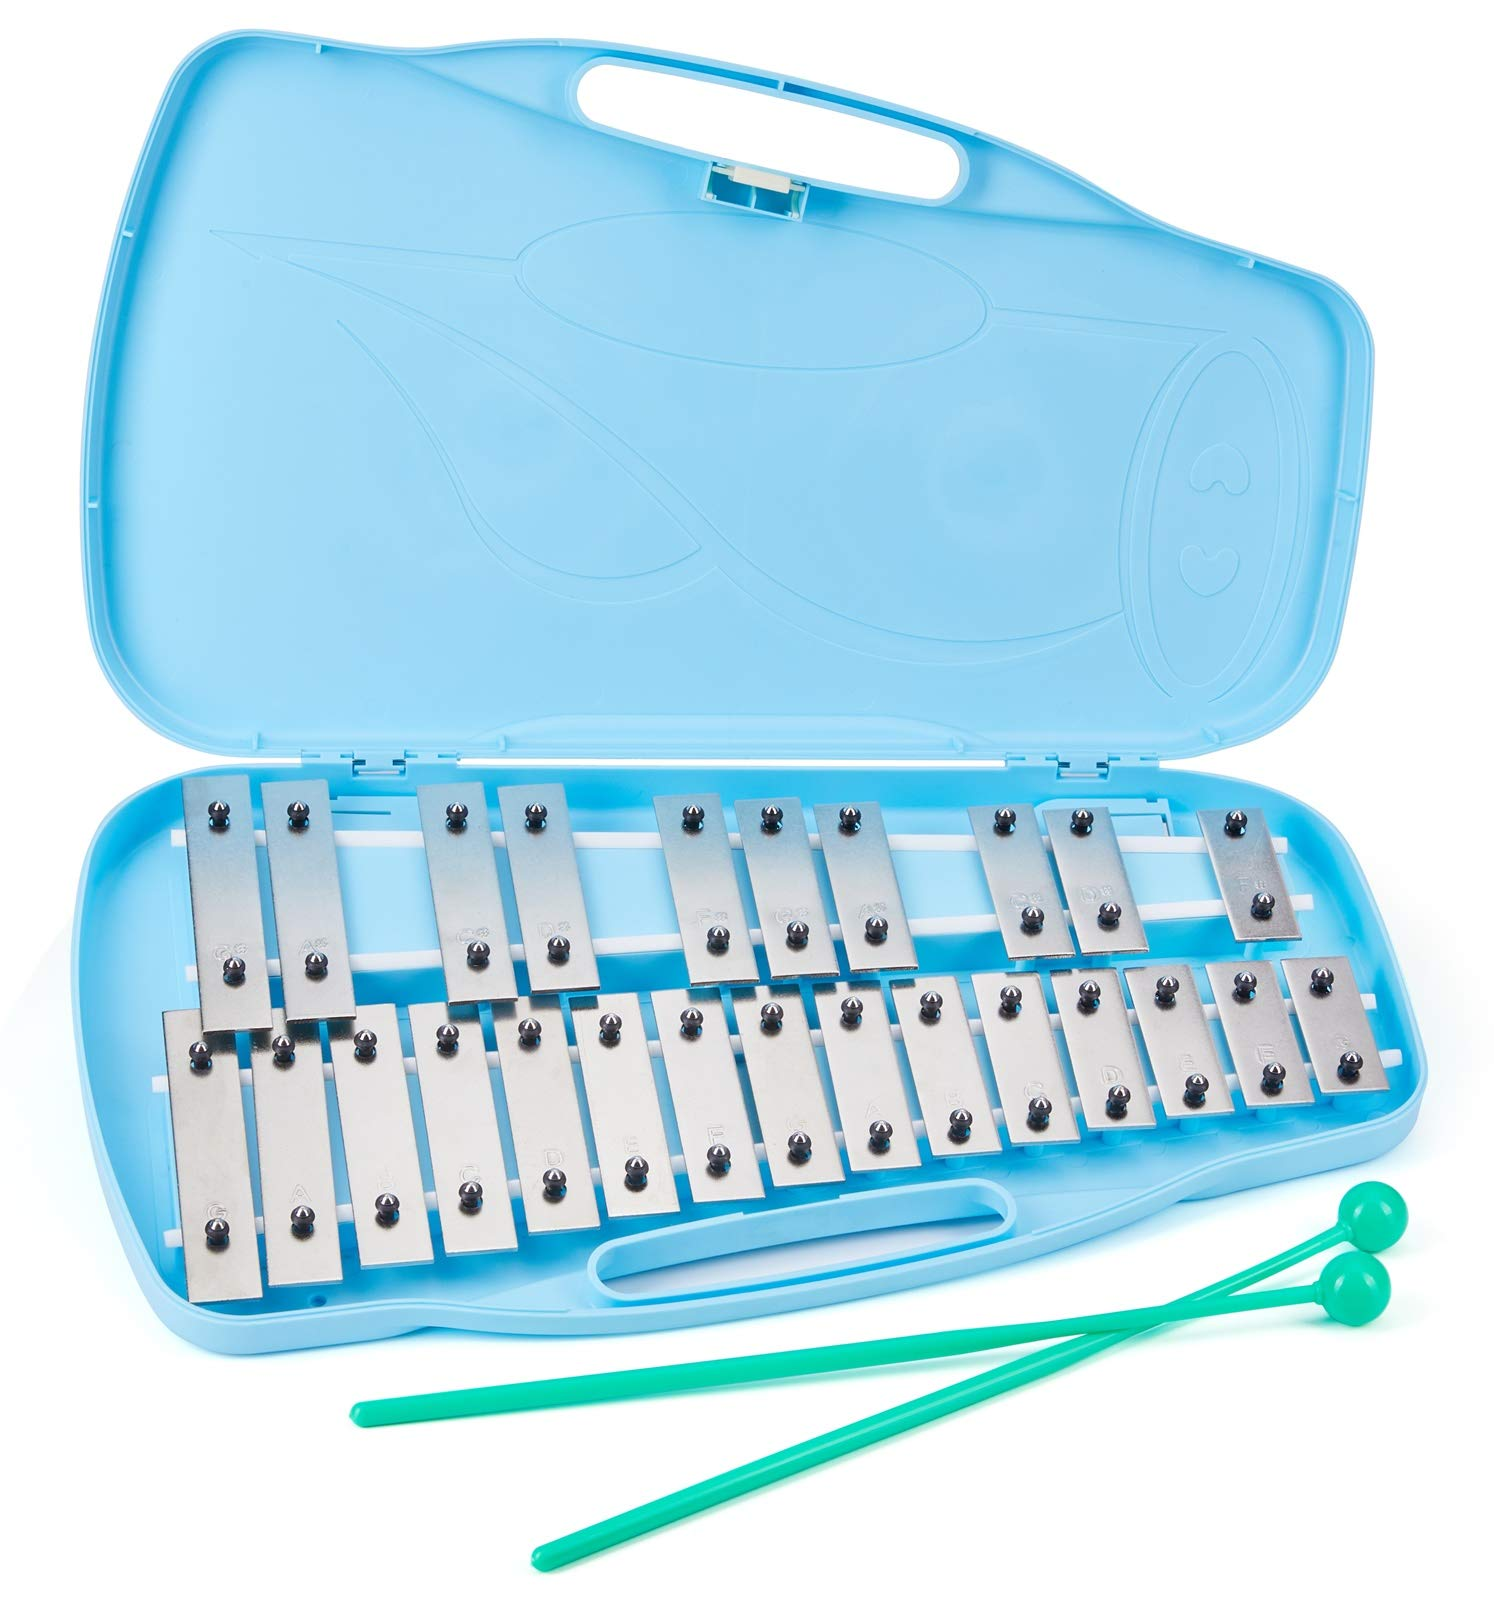 Silverstar Professional Glockenspiel 25 note Xylophone kids musical instrument Percussion instruments Xylophone Instruments by Silverstar